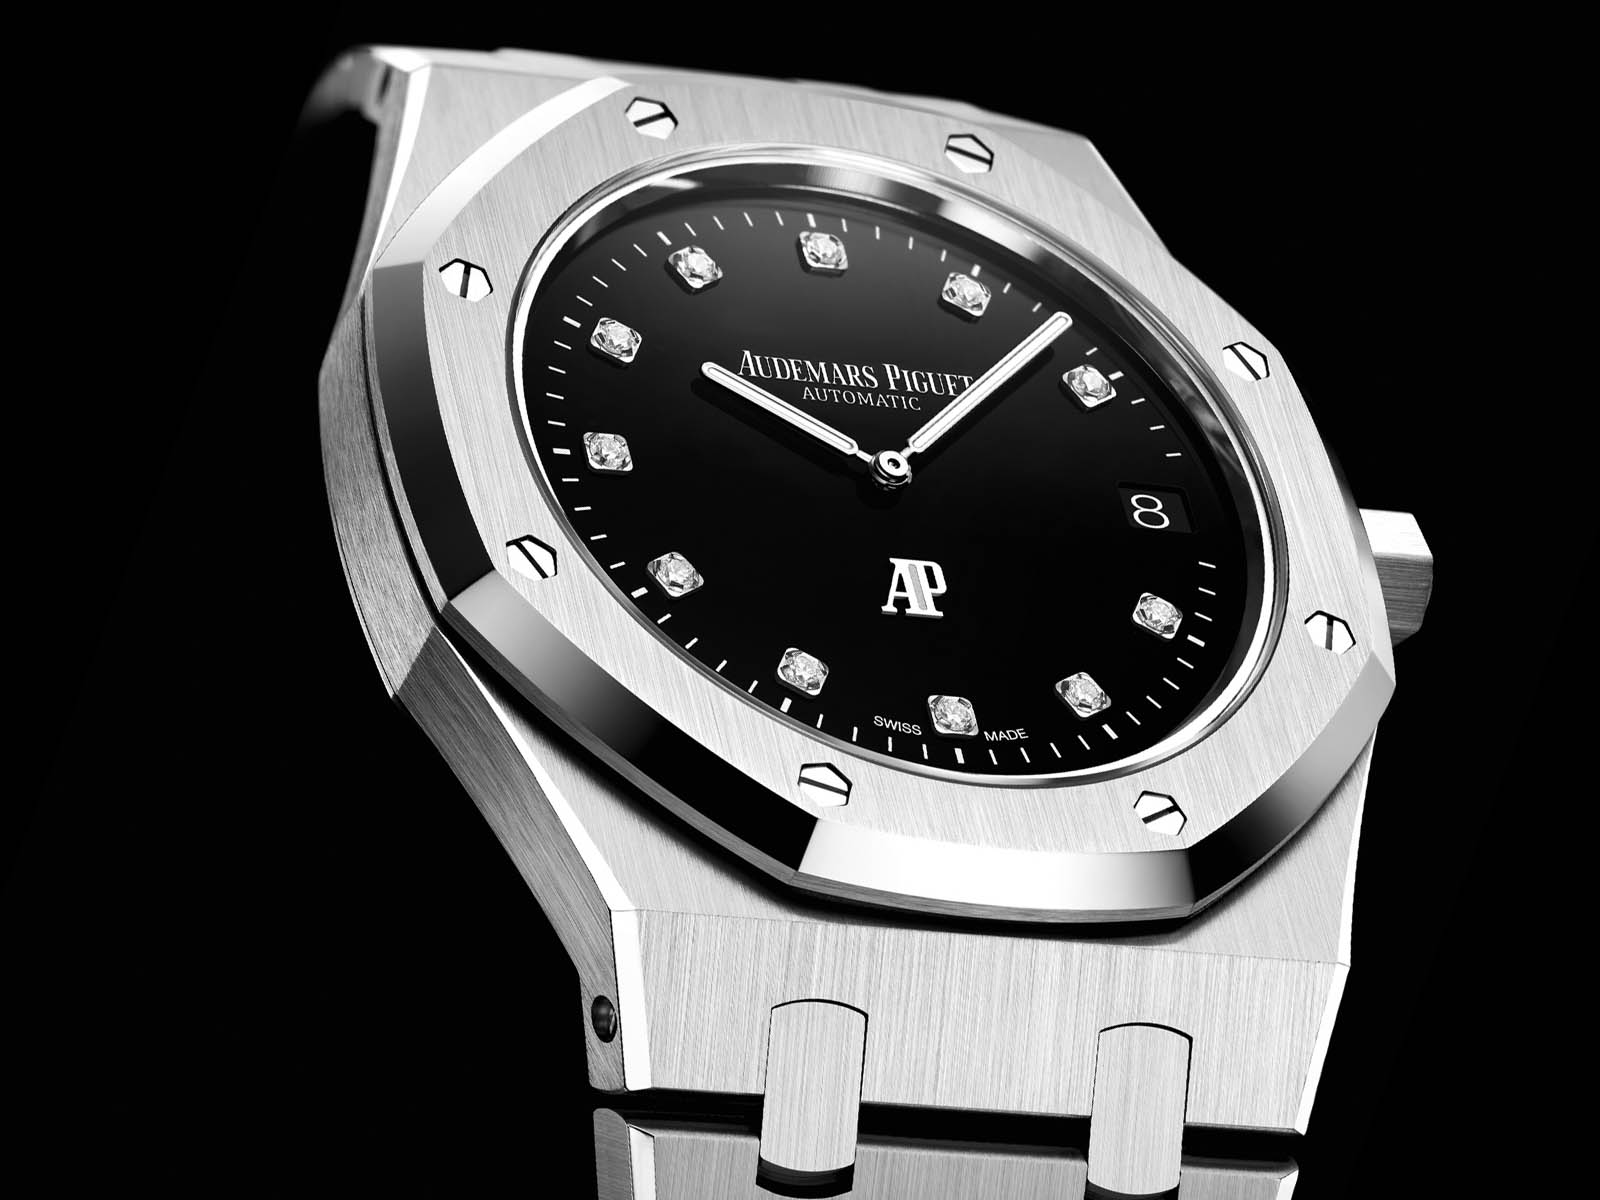 15206pt-oo-1240pt-01-audemars-piguet-royal-oak-jumbo-extra-thin-platinum-2.jpg